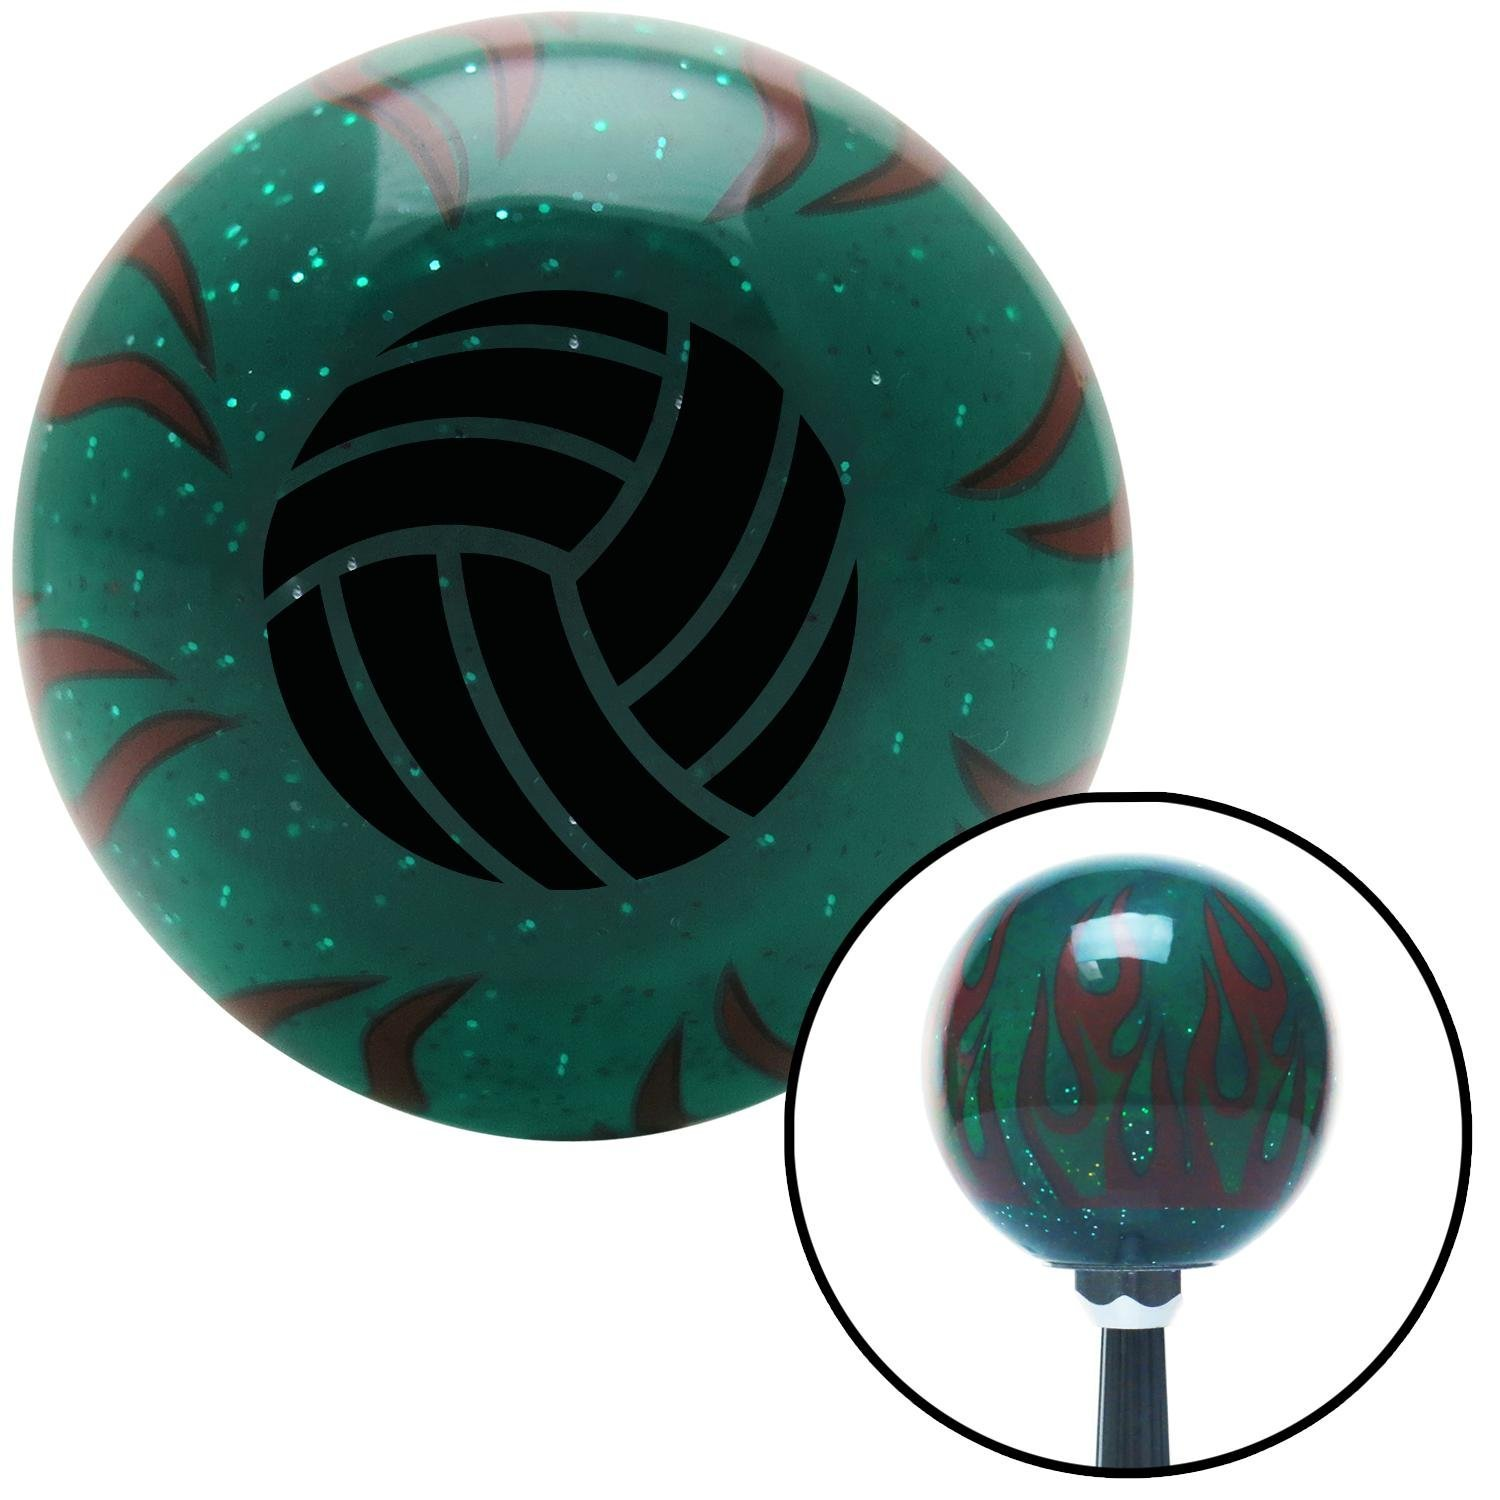 American Shifter 264419 Green Flame Metal Flake Shift Knob with M16 x 1.5 Insert Black Volleyball